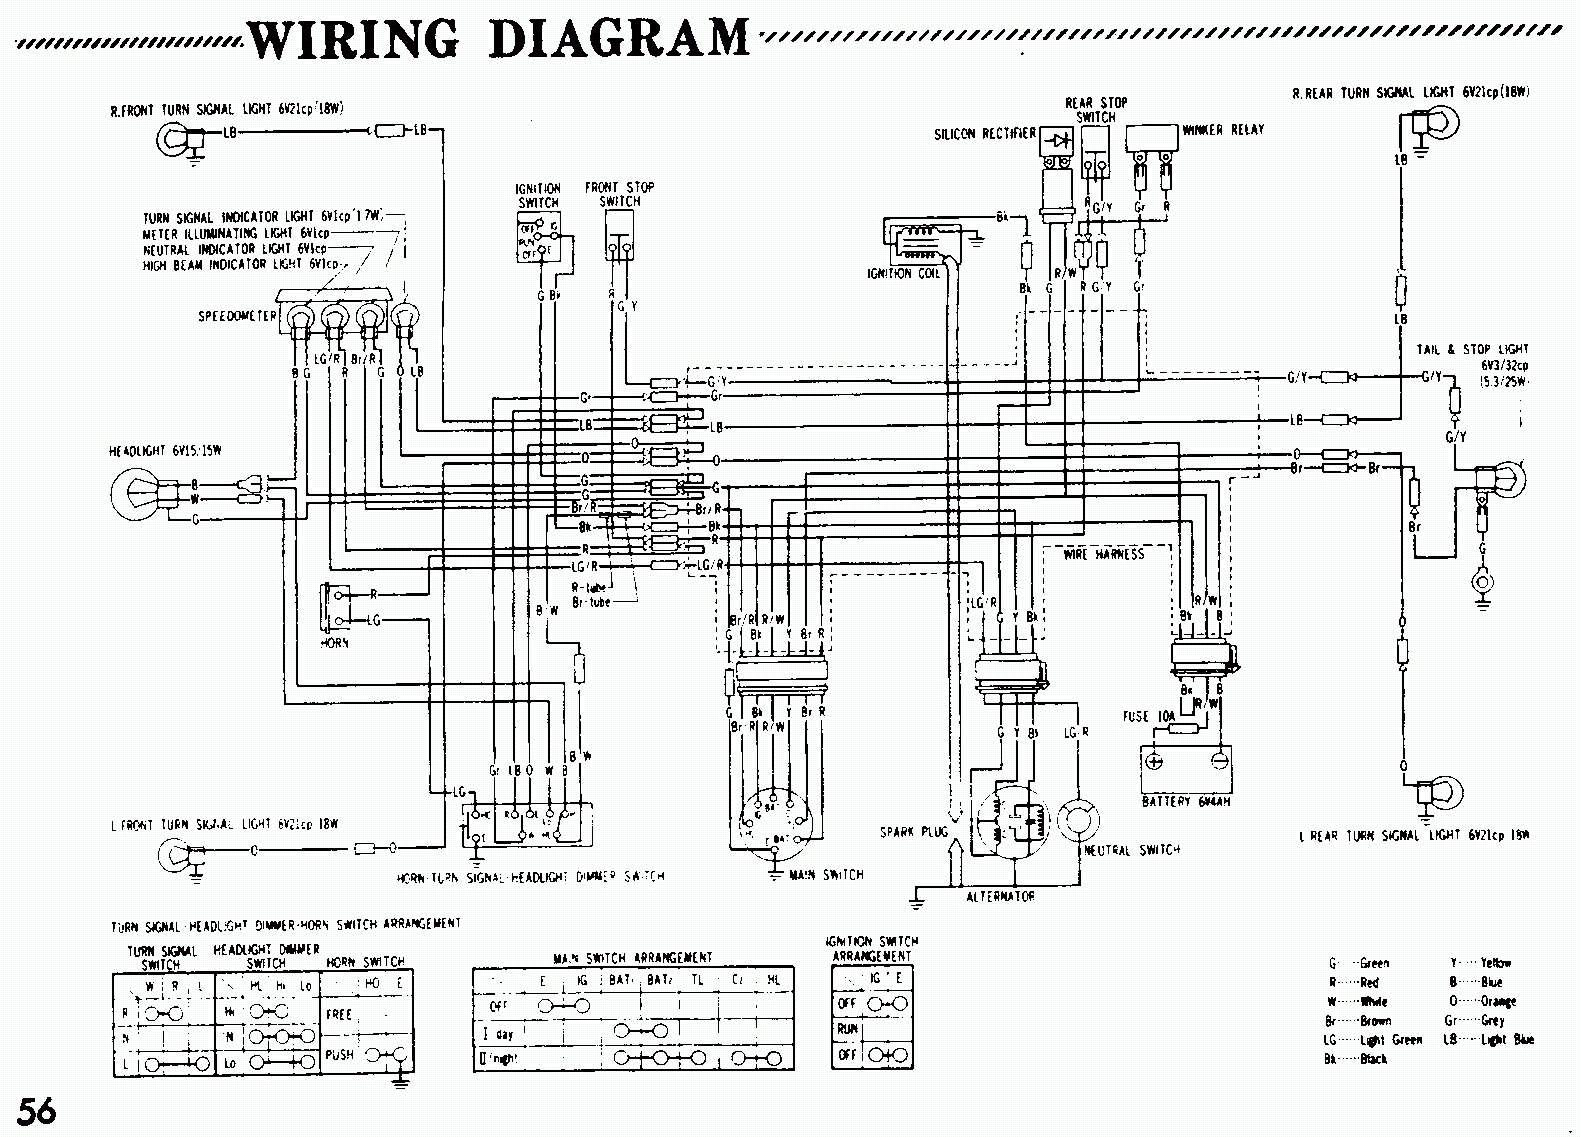 honda ct70 1976 wiring diagram tbolt usa tech database tbolt usa, llc wiring harness 1983 honda ct110 at eliteediting.co